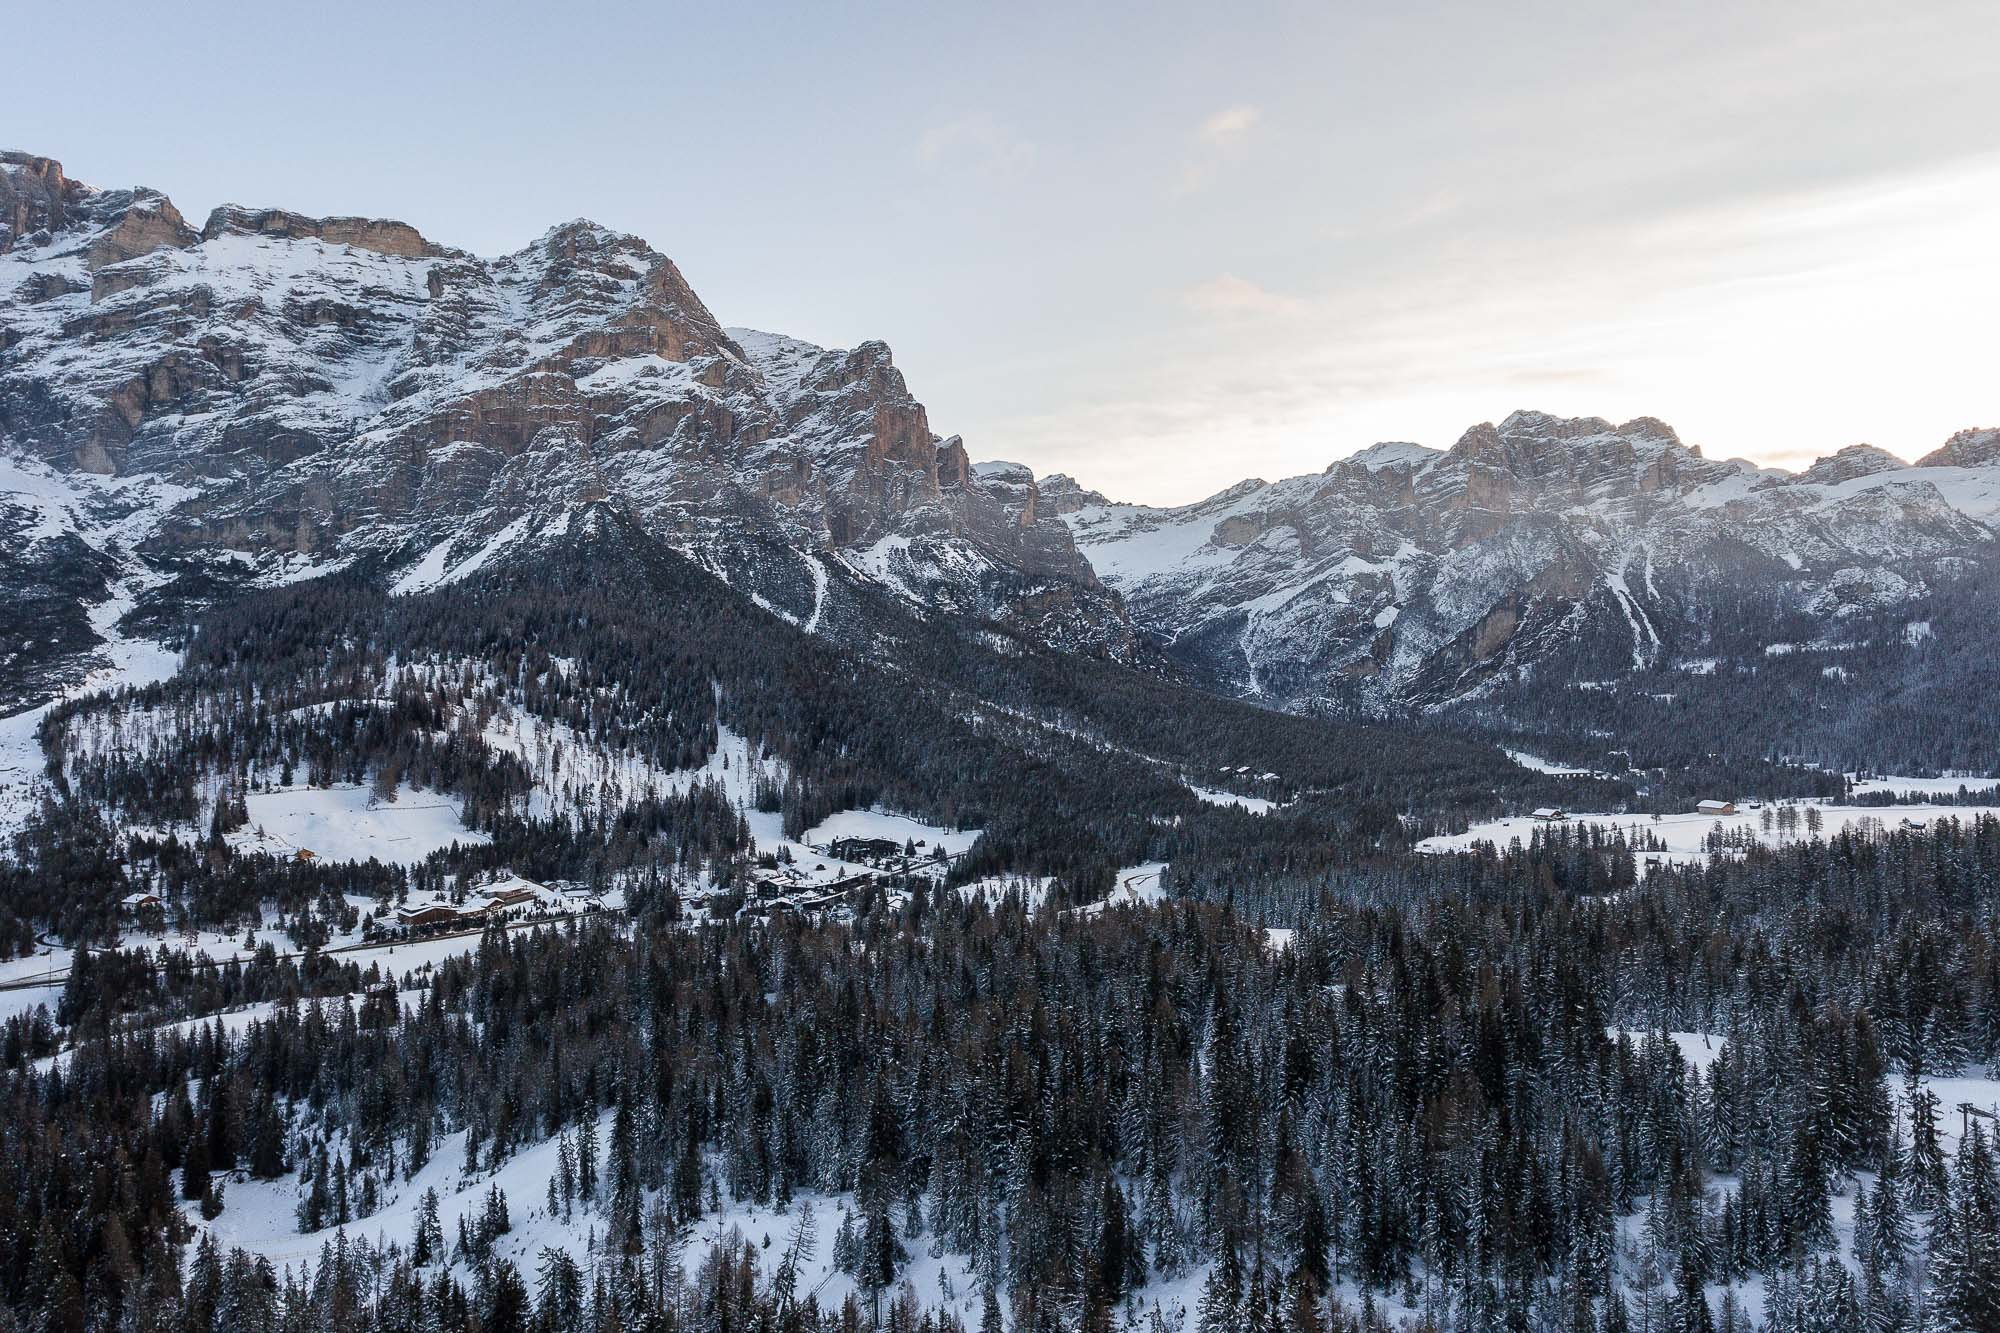 Dolomiti from the AIR - Aerials - Jus Medic